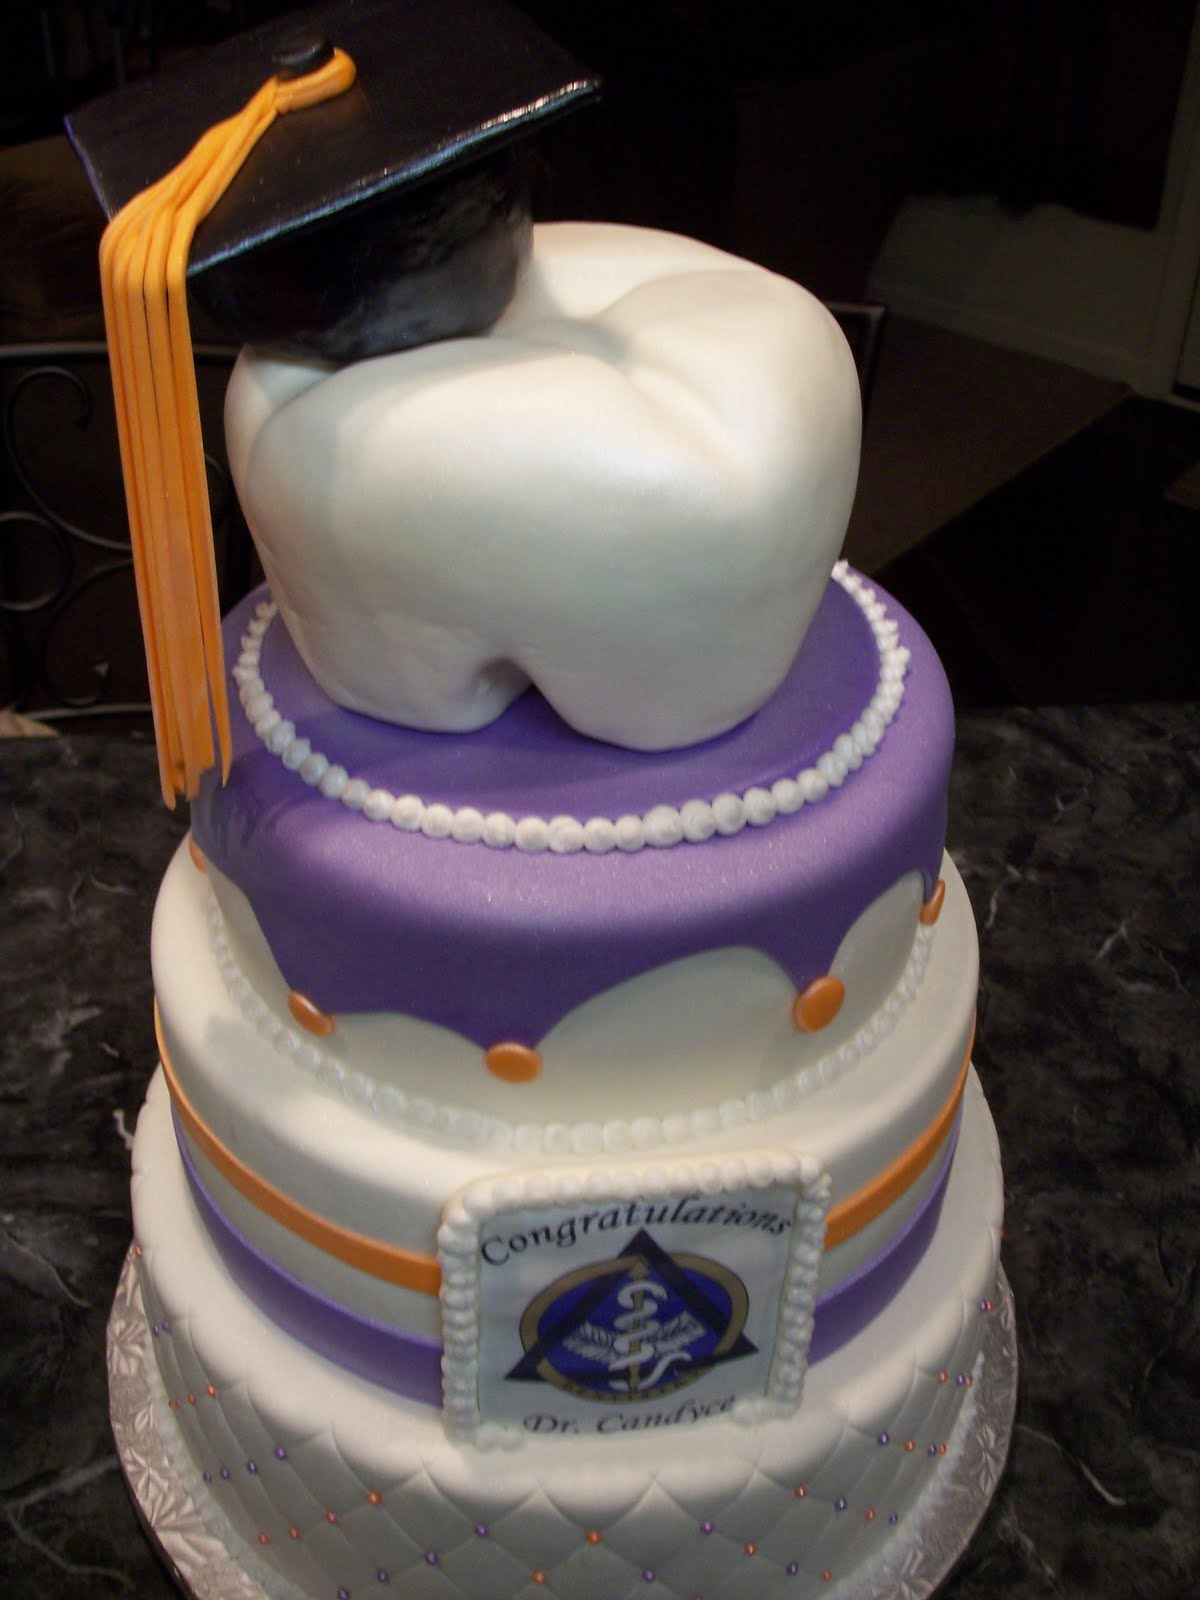 9 Photos of Dental Graduation Cupcakes